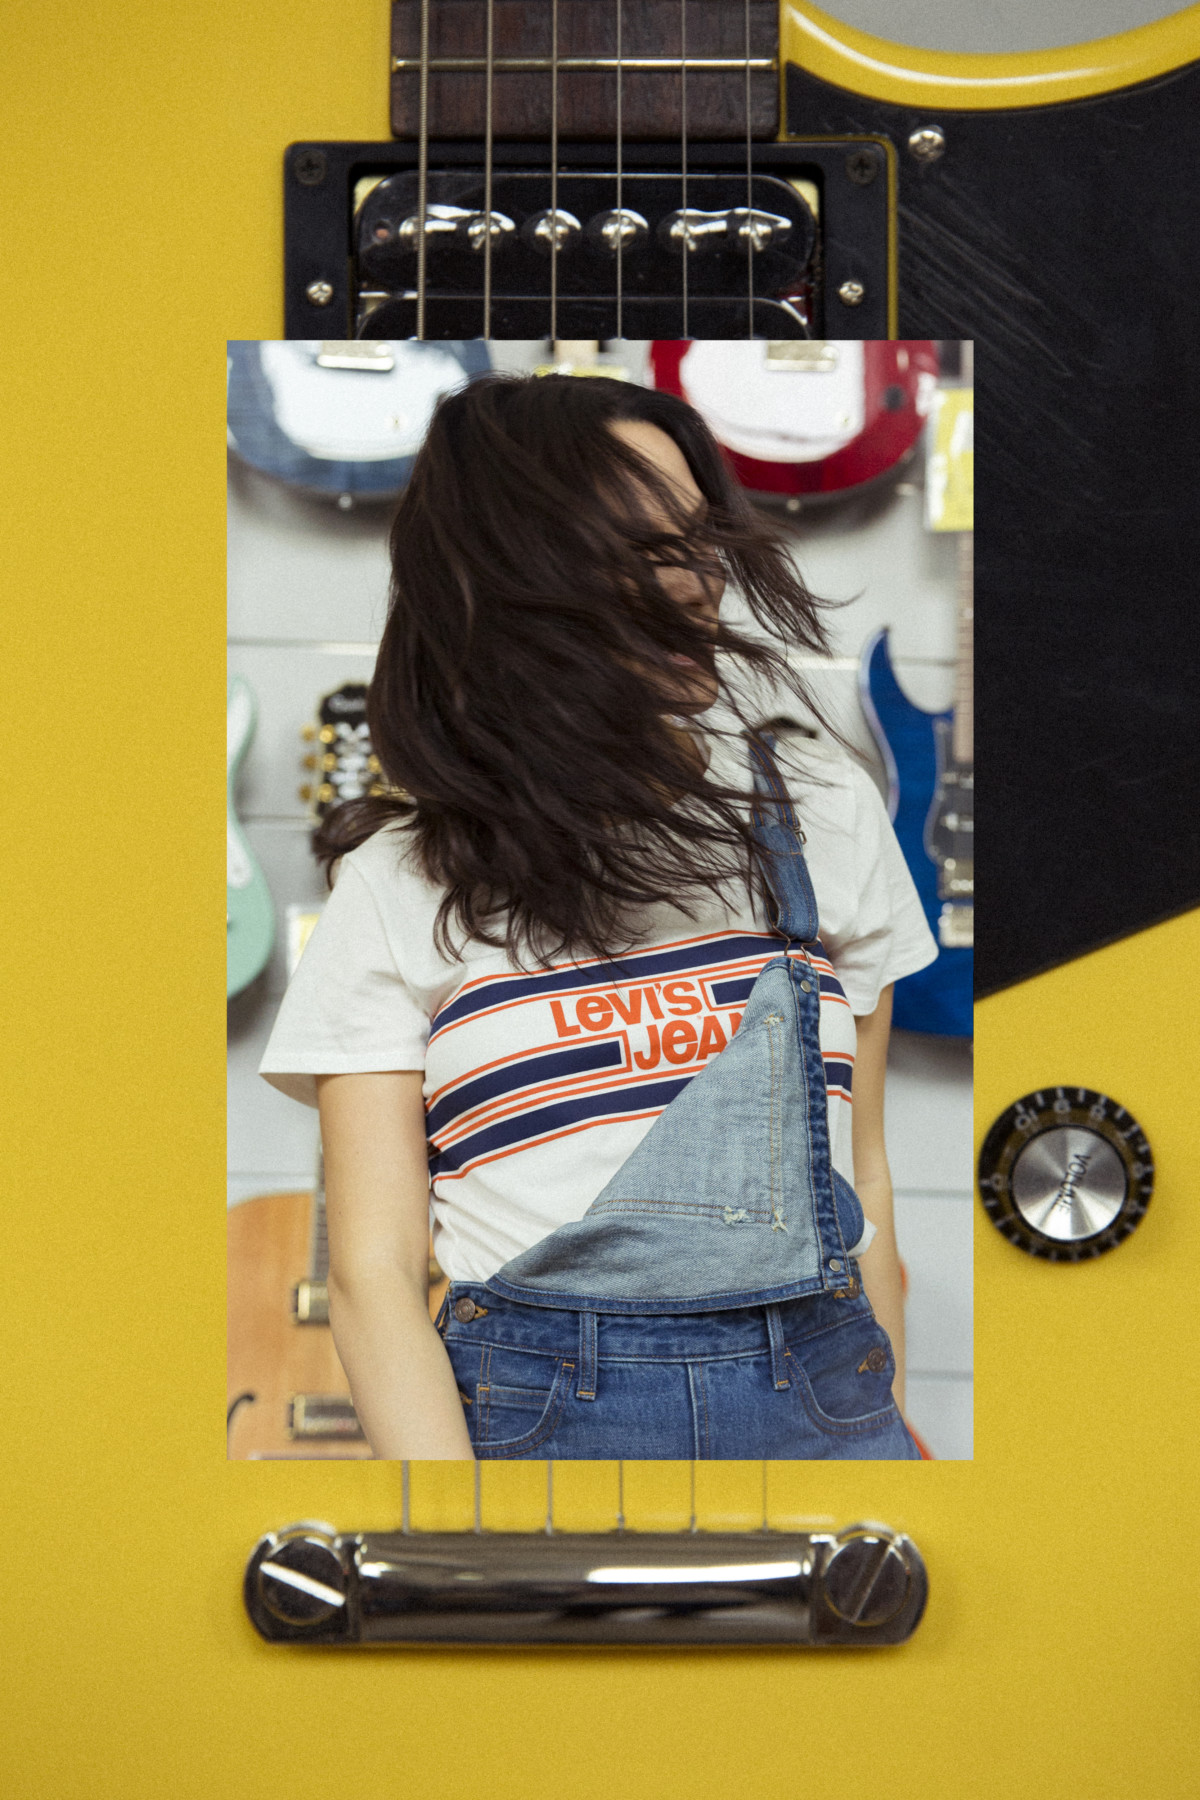 Levi's Orange Tab, avinia biancalani, orange tab, levi's, live in levis, the style pusher, denim